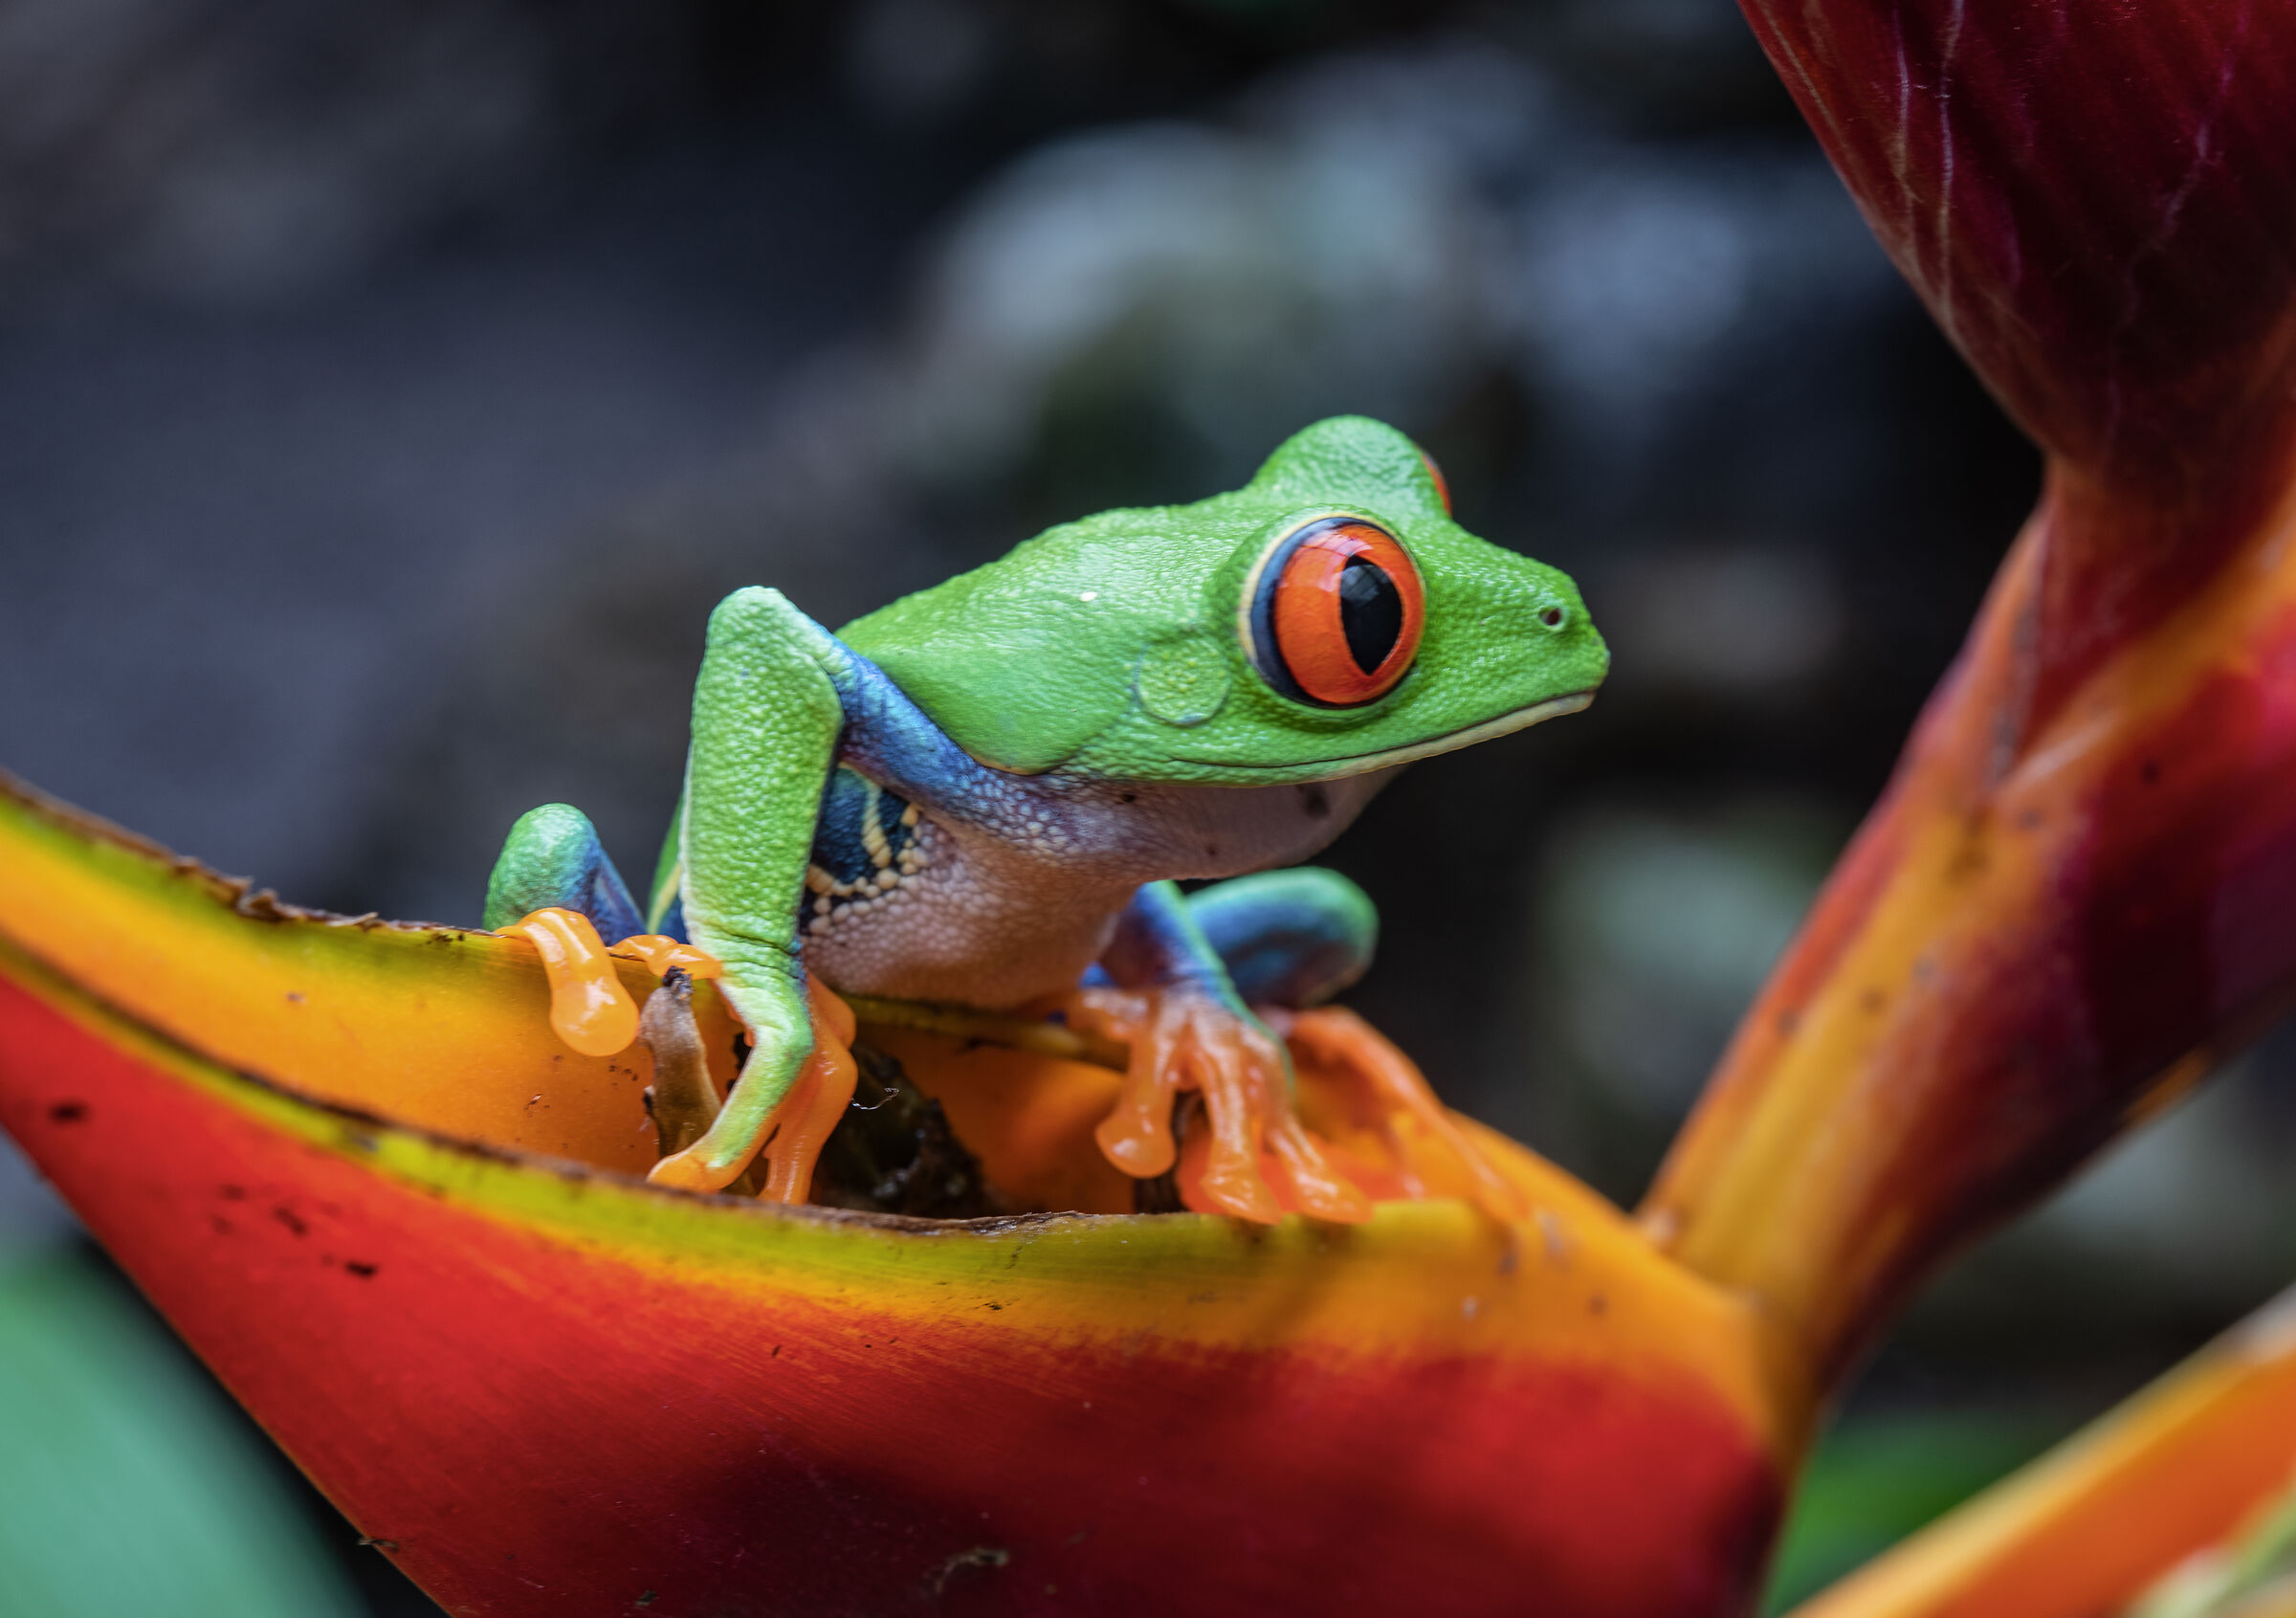 frog of the rosial eyes...